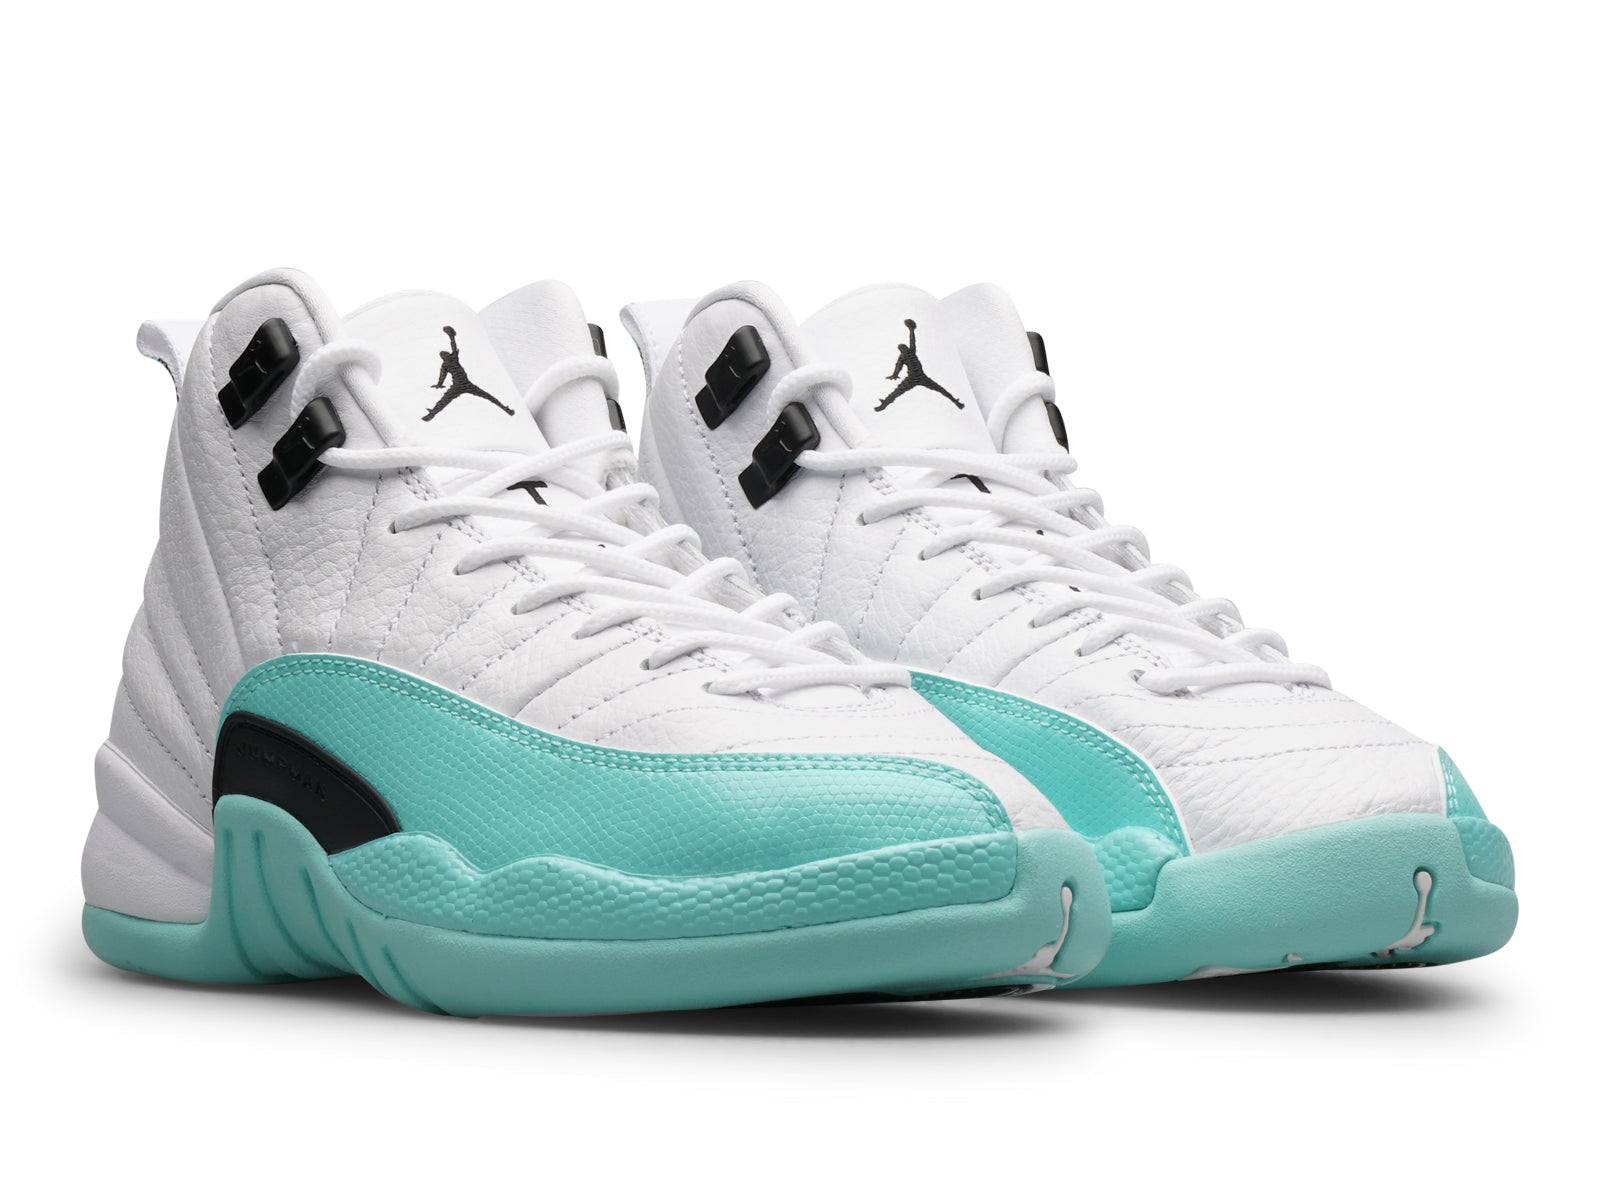 fba3344b3761b6 ... switzerland the air jordan 12 light aqua gs boasts a white leather  upper accompanied by a